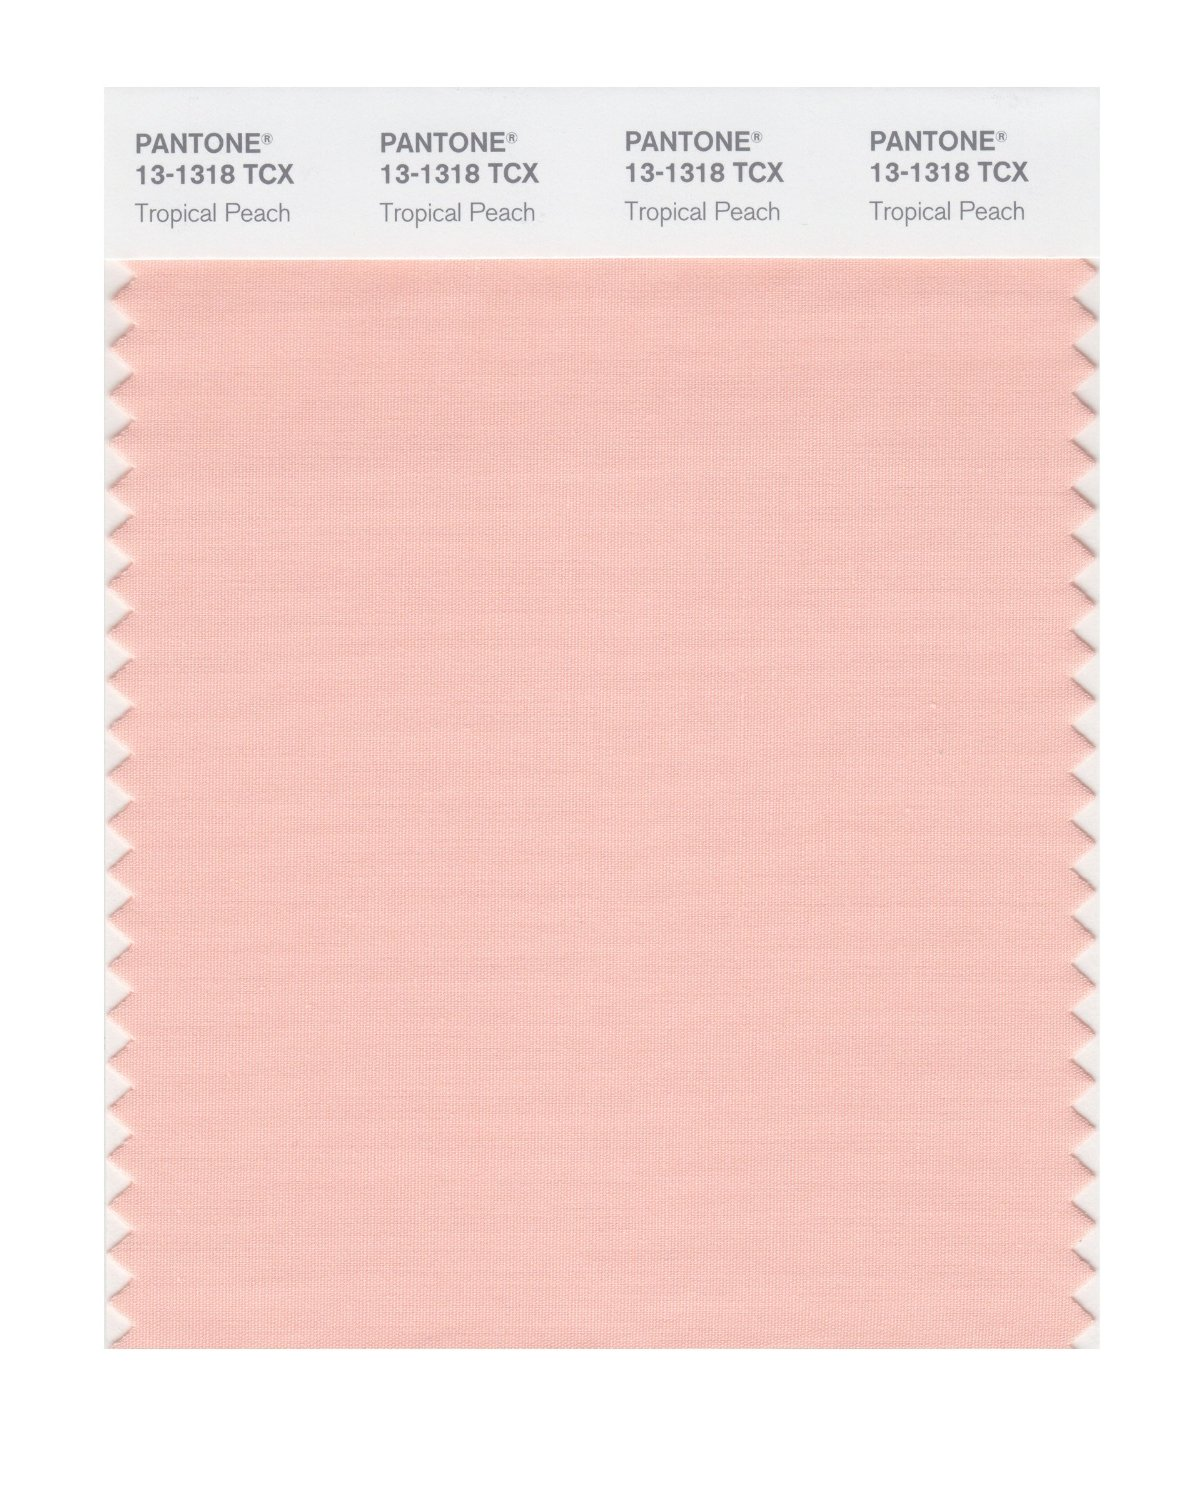 Pantone Smart Swatch 13-1318 Tropical Peach